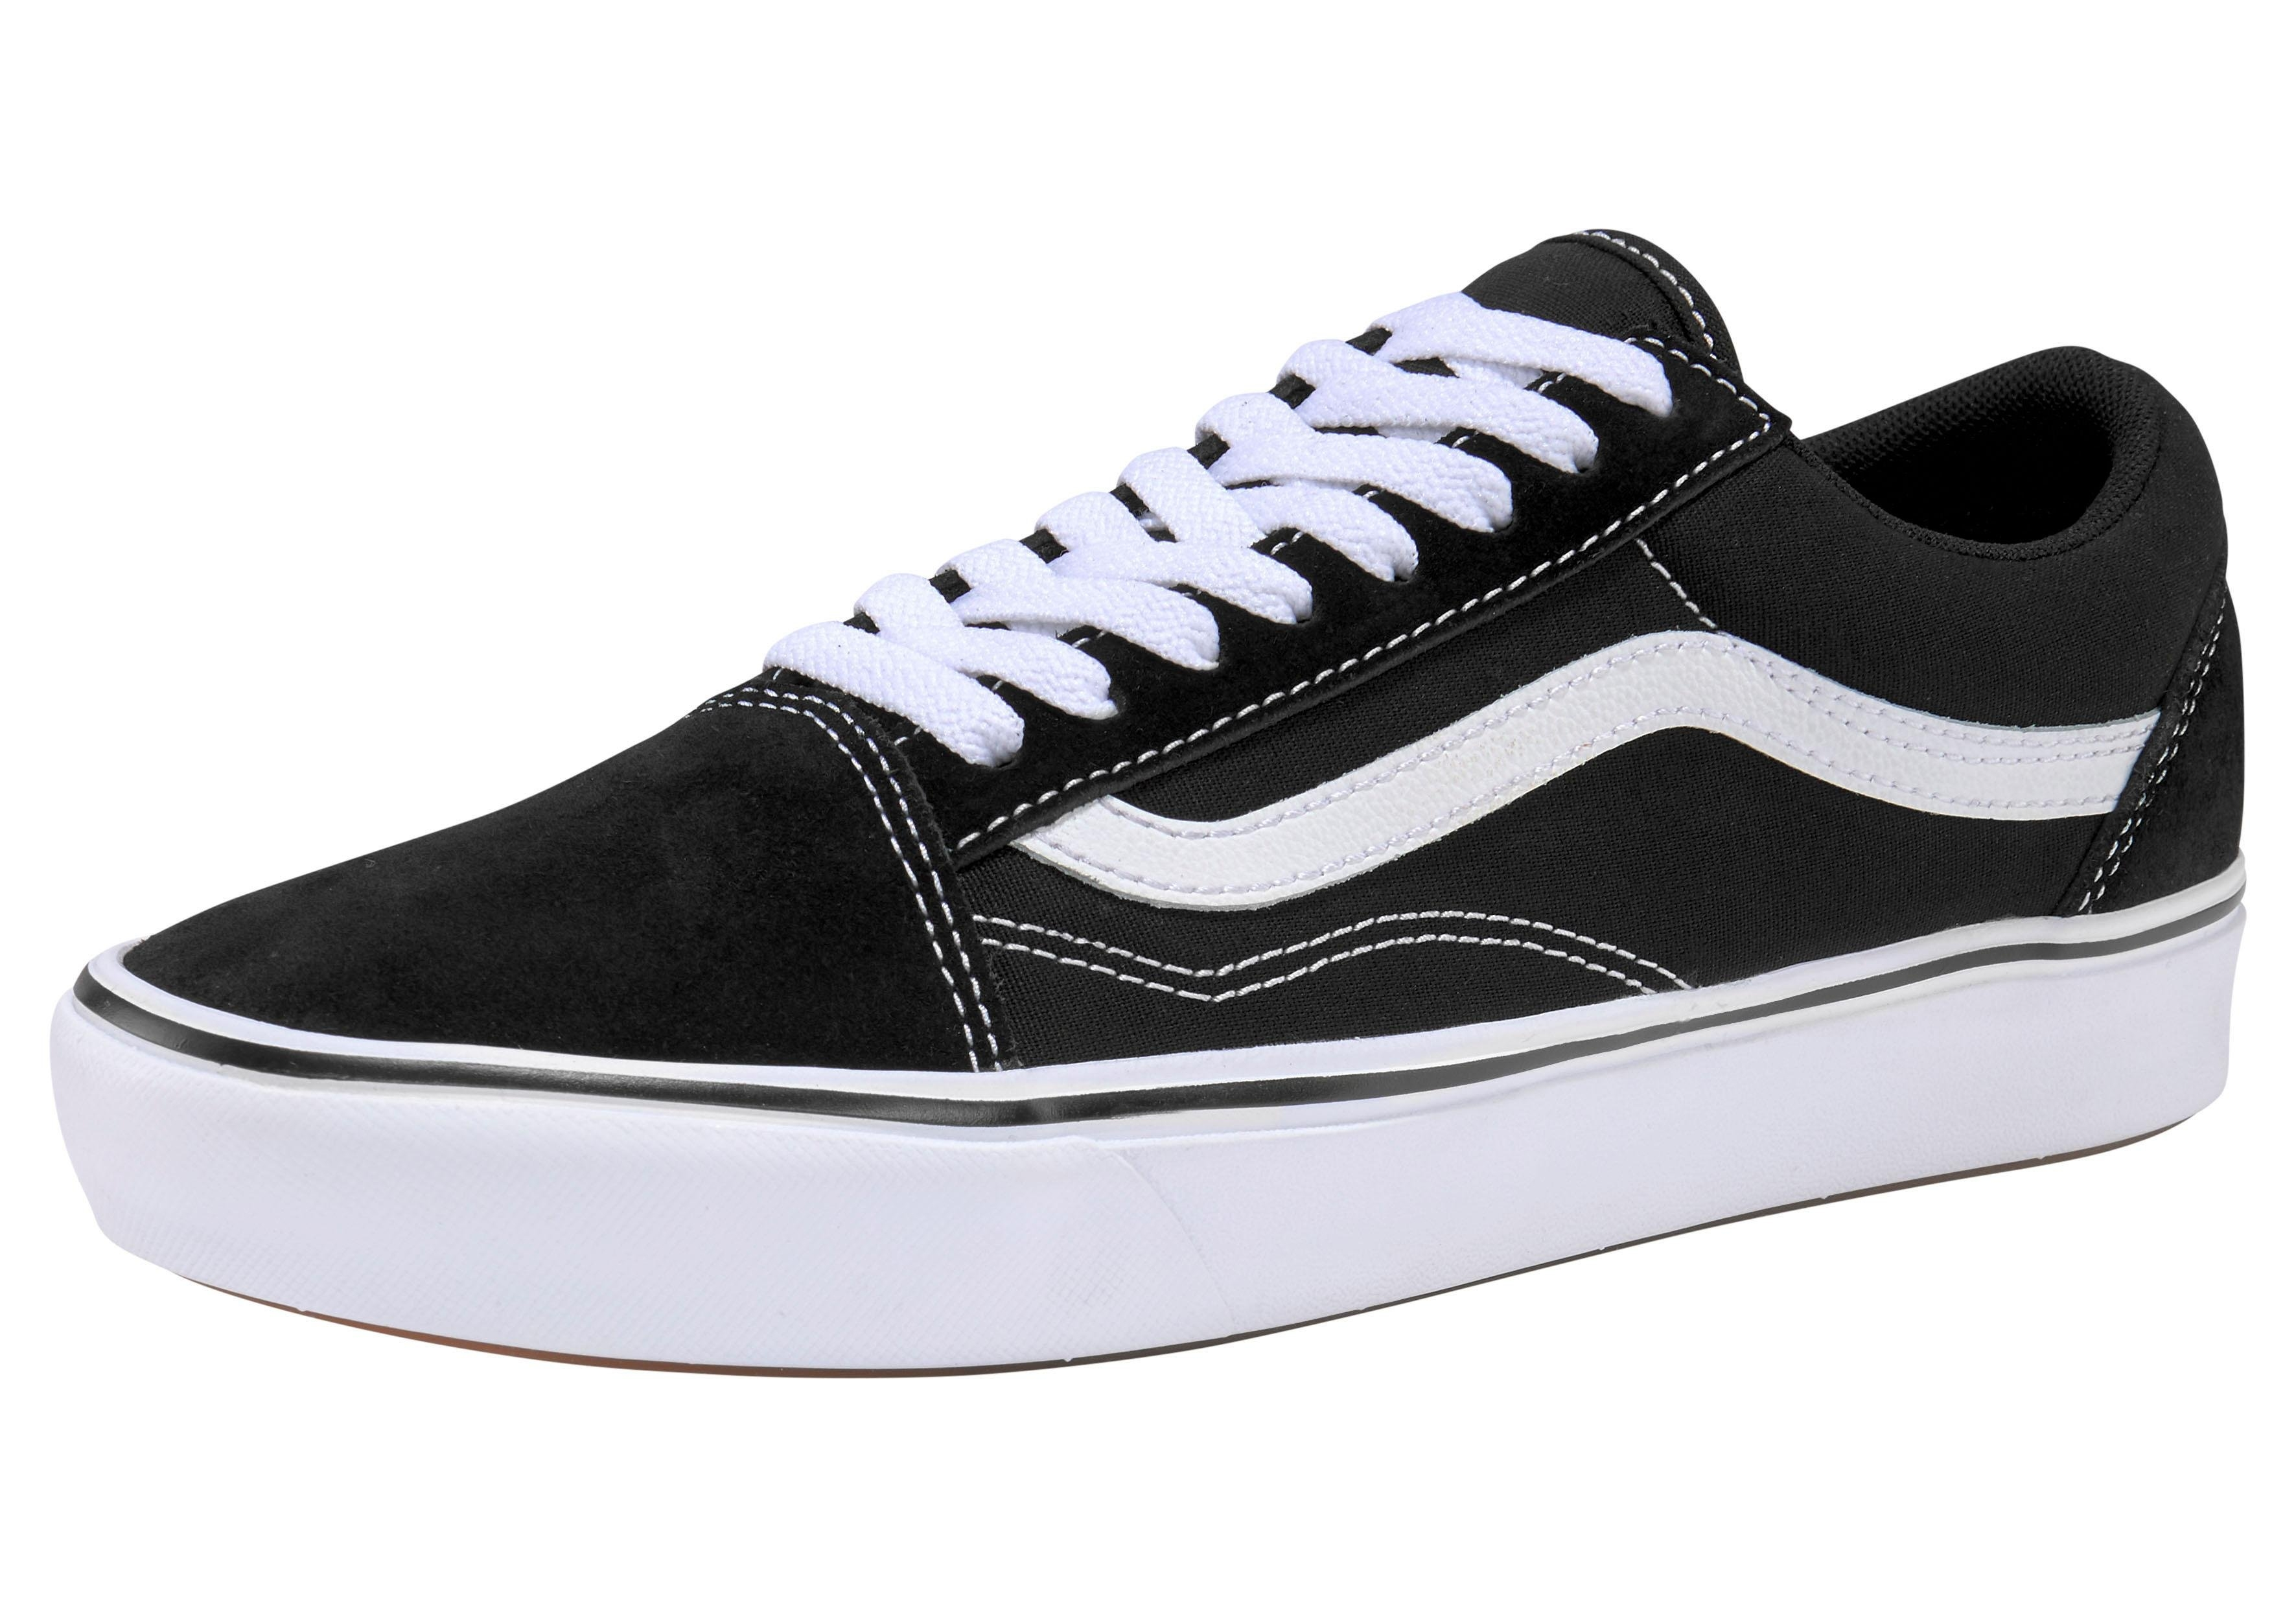 1ea49eca1bf ... VANS sneakers »Old Skool Platform«, VANS sneakers »OLD SKOOL«, Vans  sneakers »Old Skool«, Vans sneakers »Old Skool«, Vans Old Skool suède  sneakers, ...